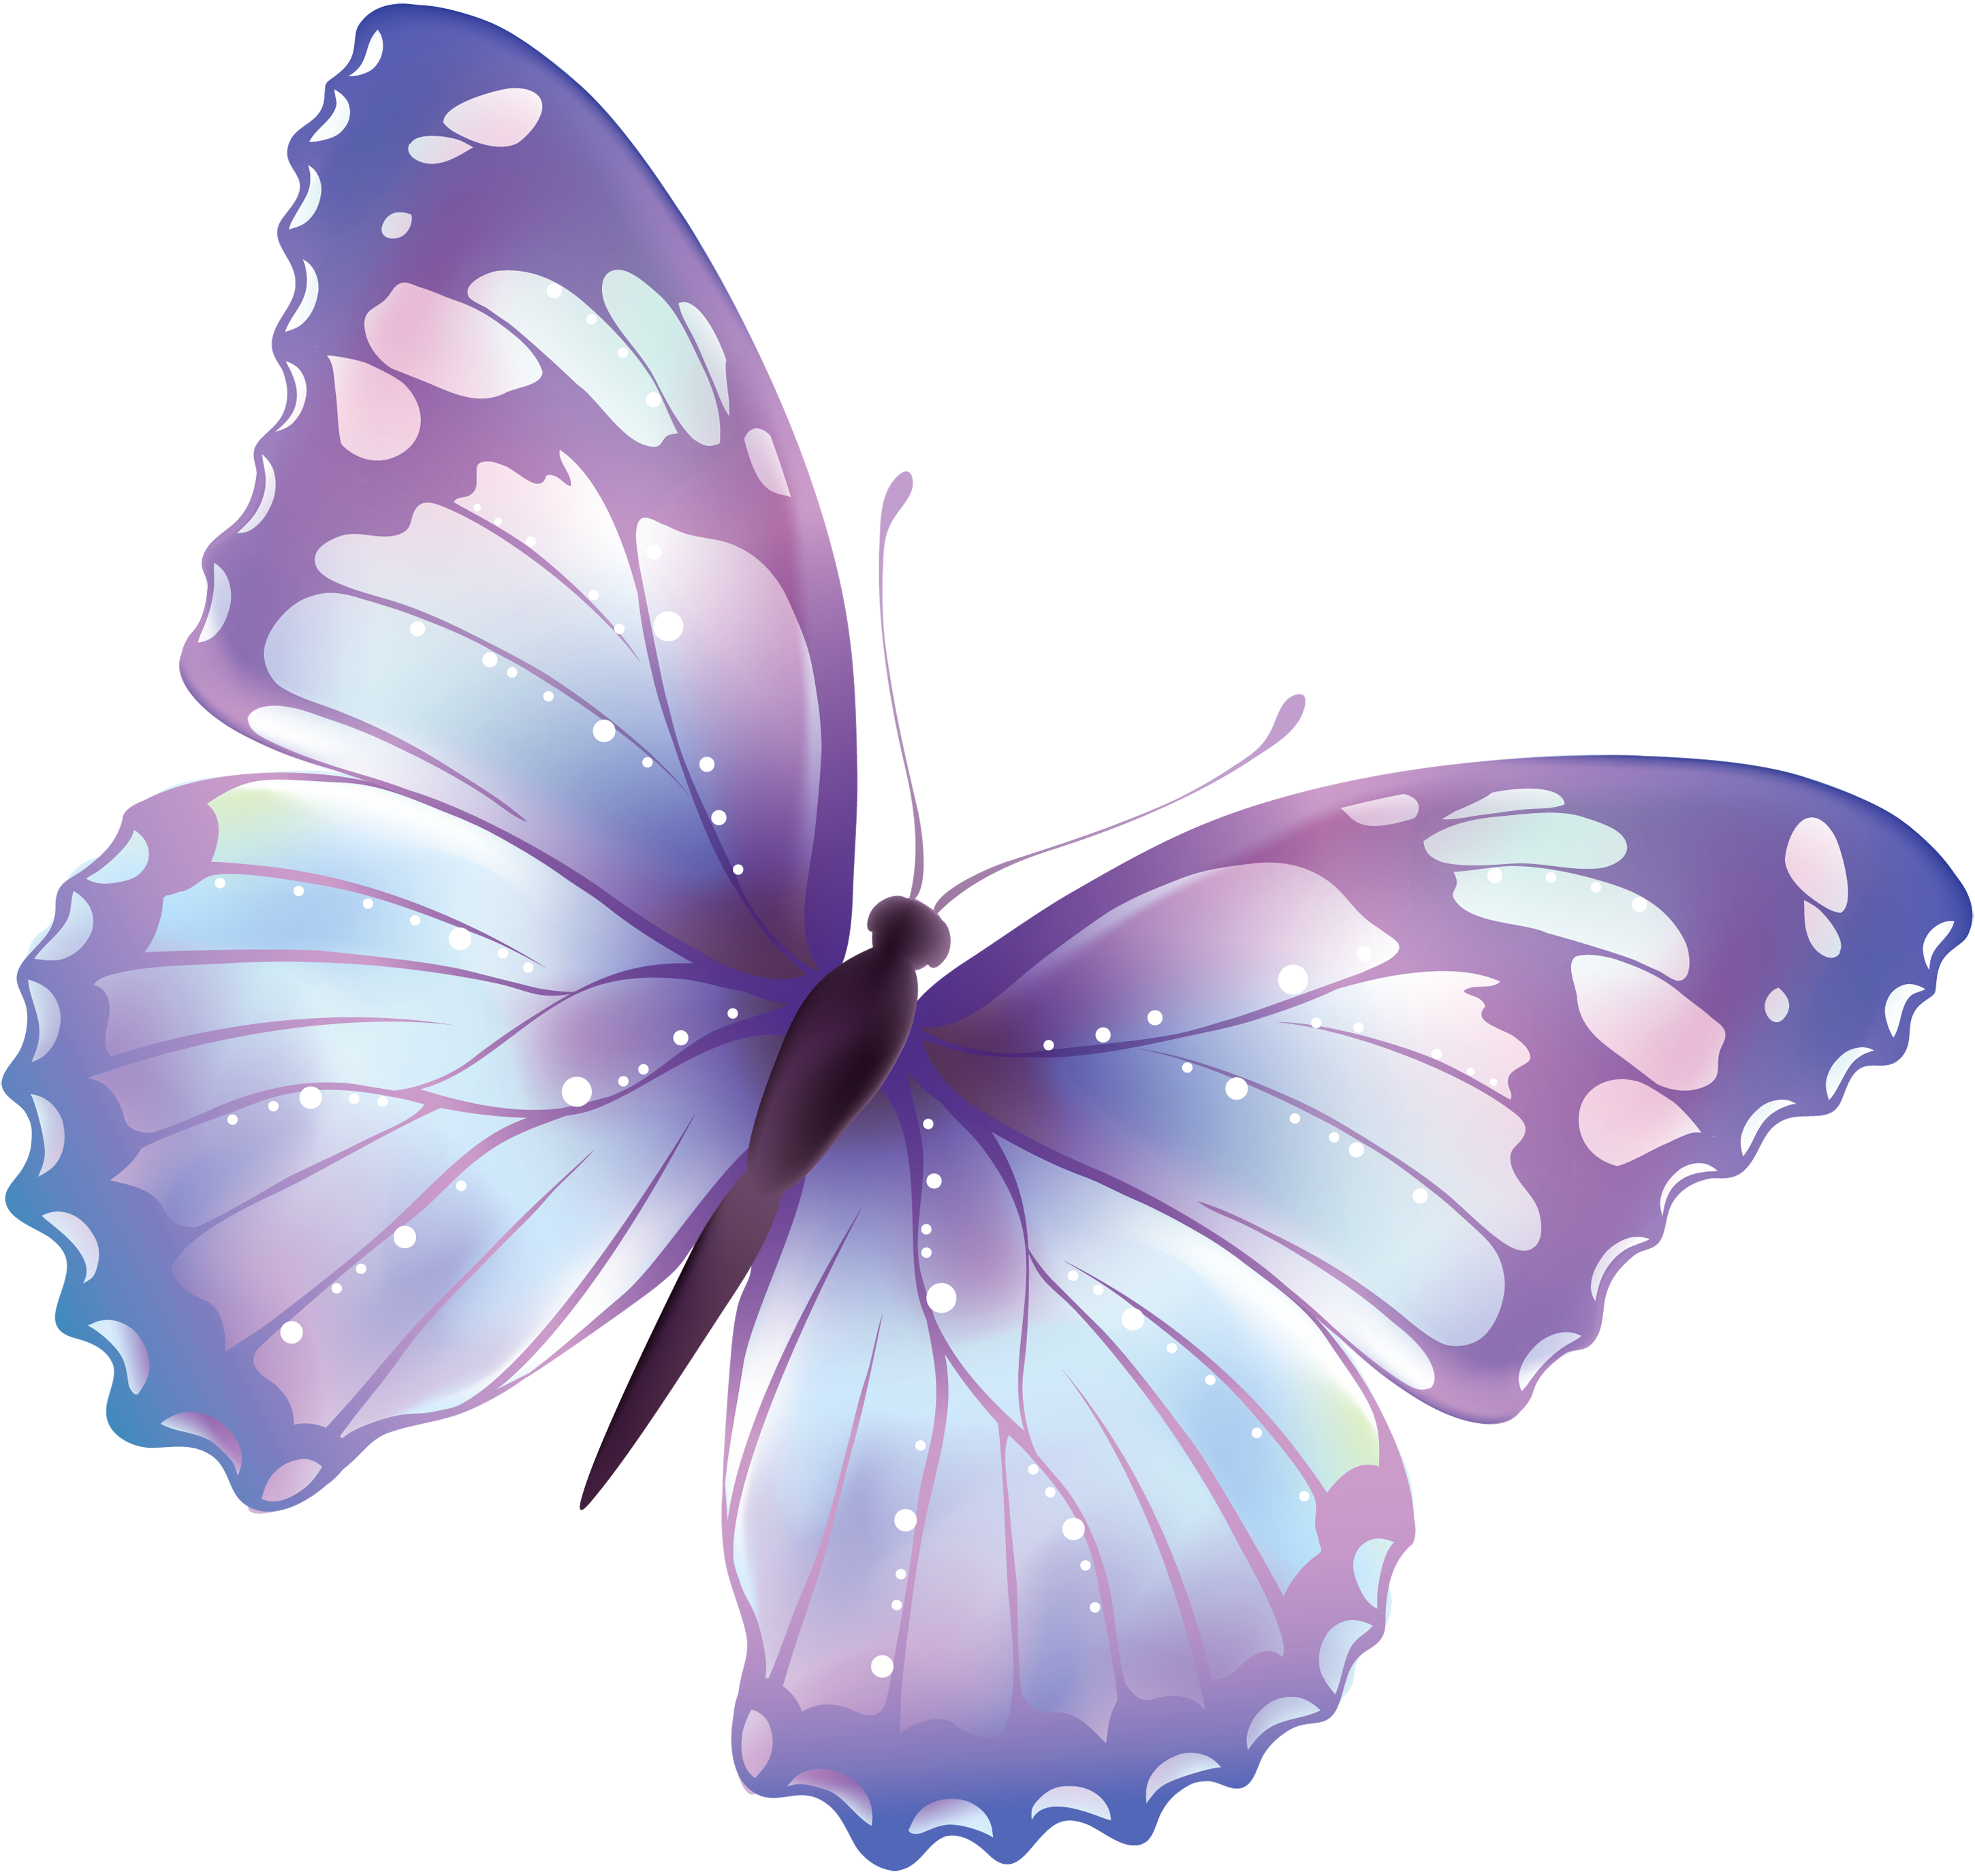 Download PNG image: flying butterfly PNG image | εїз Free To Fly ...